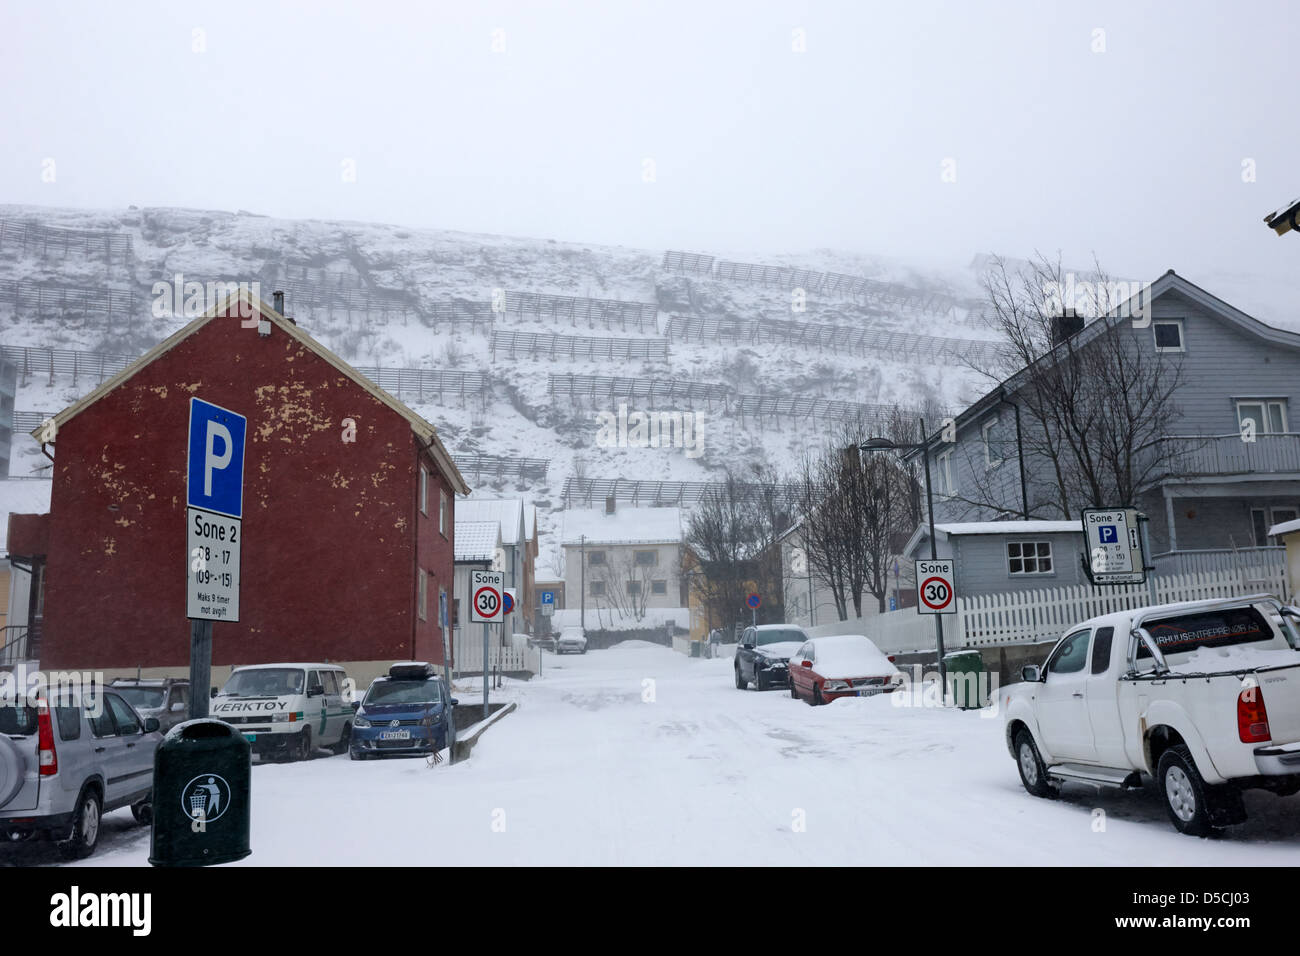 snow fences anti avalanche hill barriers on hillside above street covered in snow during winter hammerfest finnmark - Stock Image